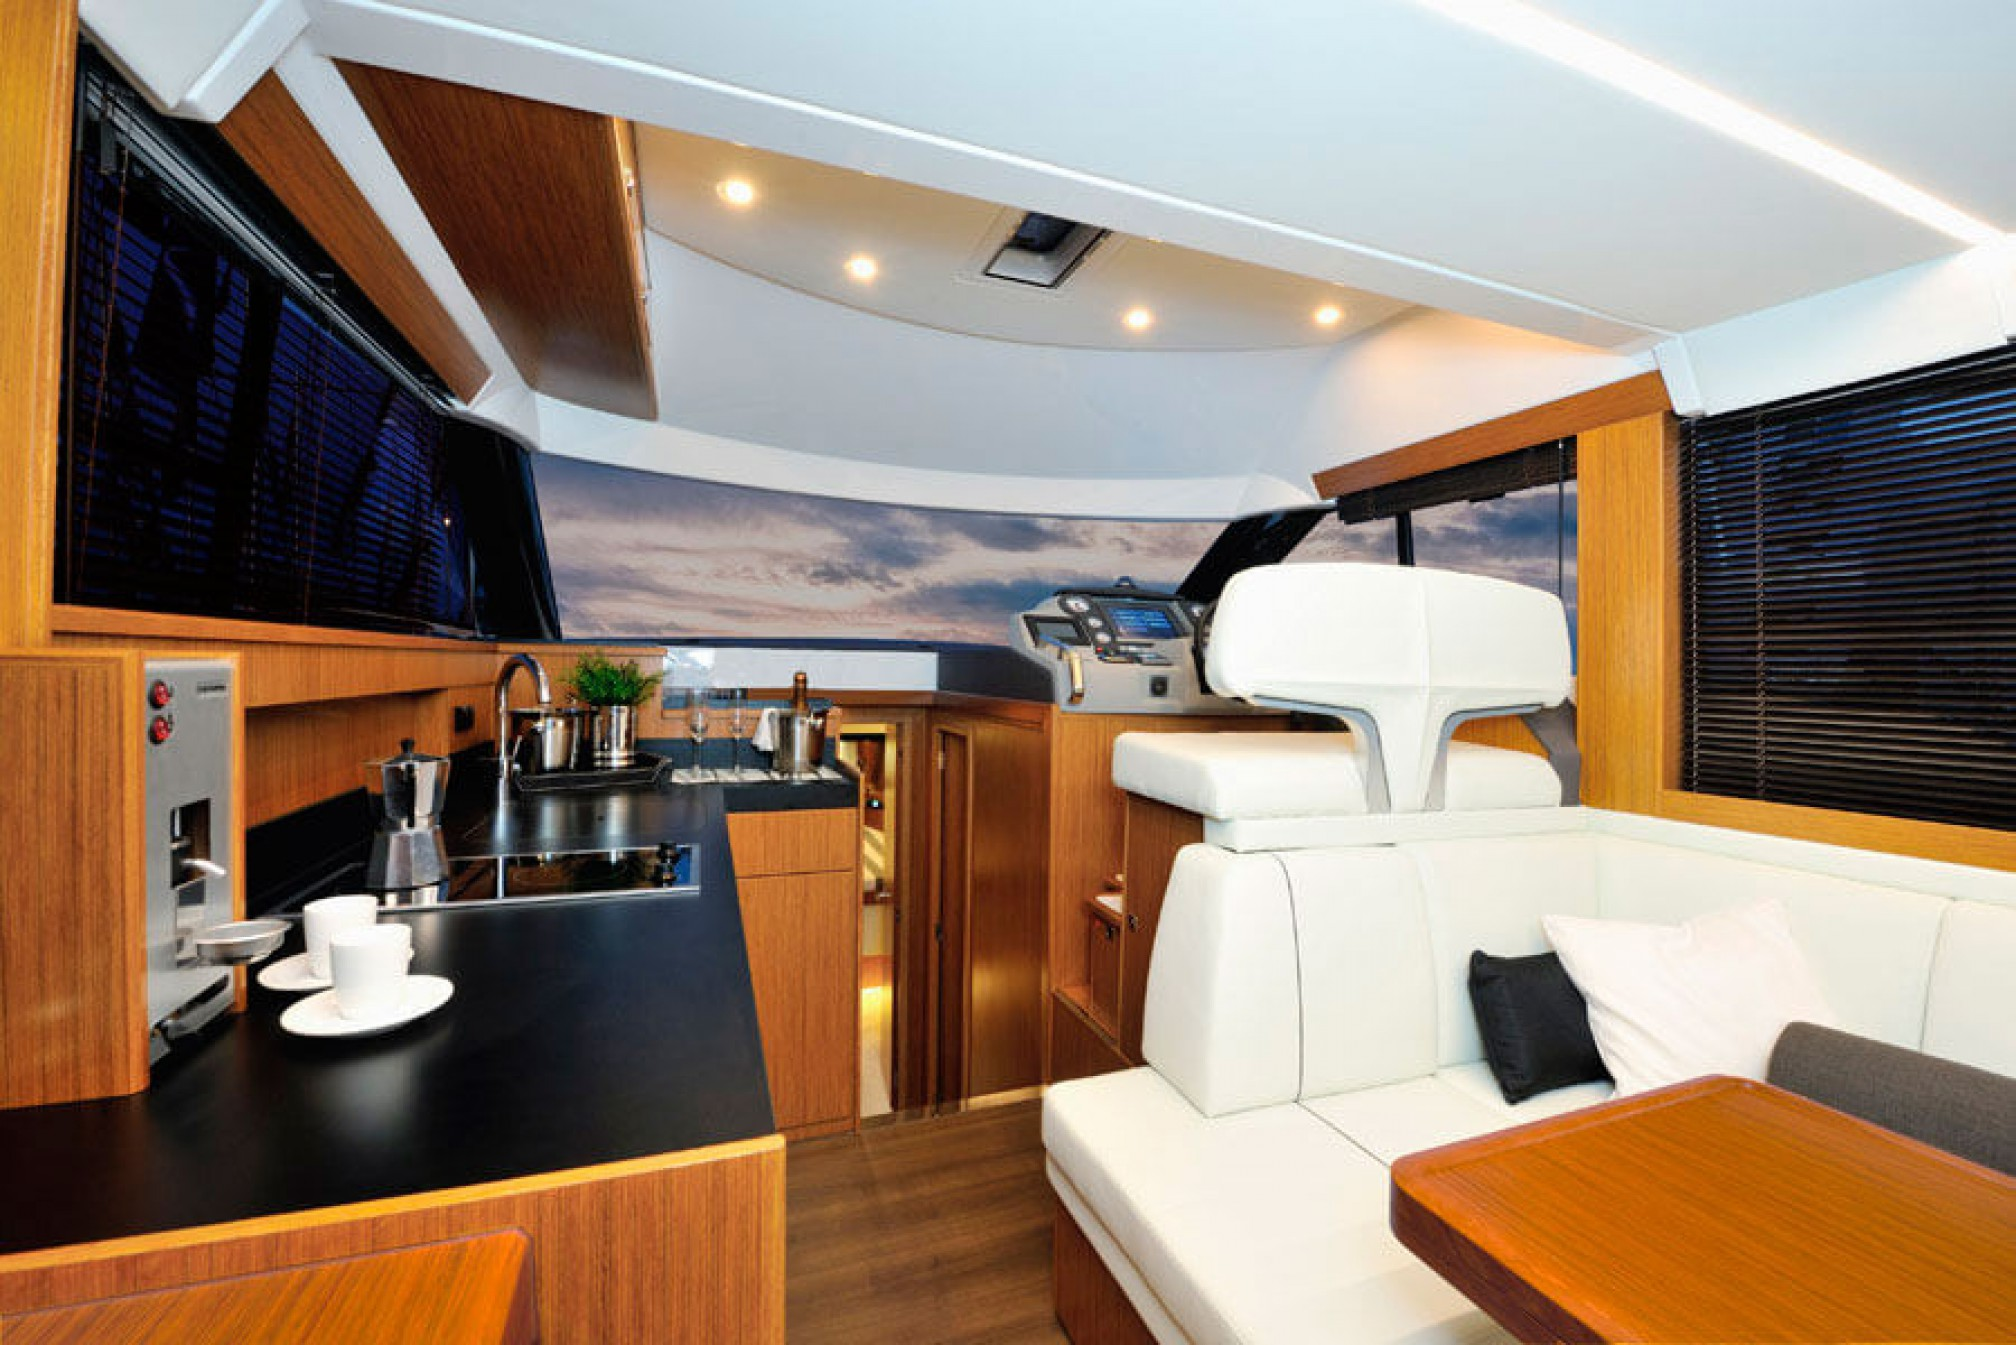 Rental yacht Bavaria salon